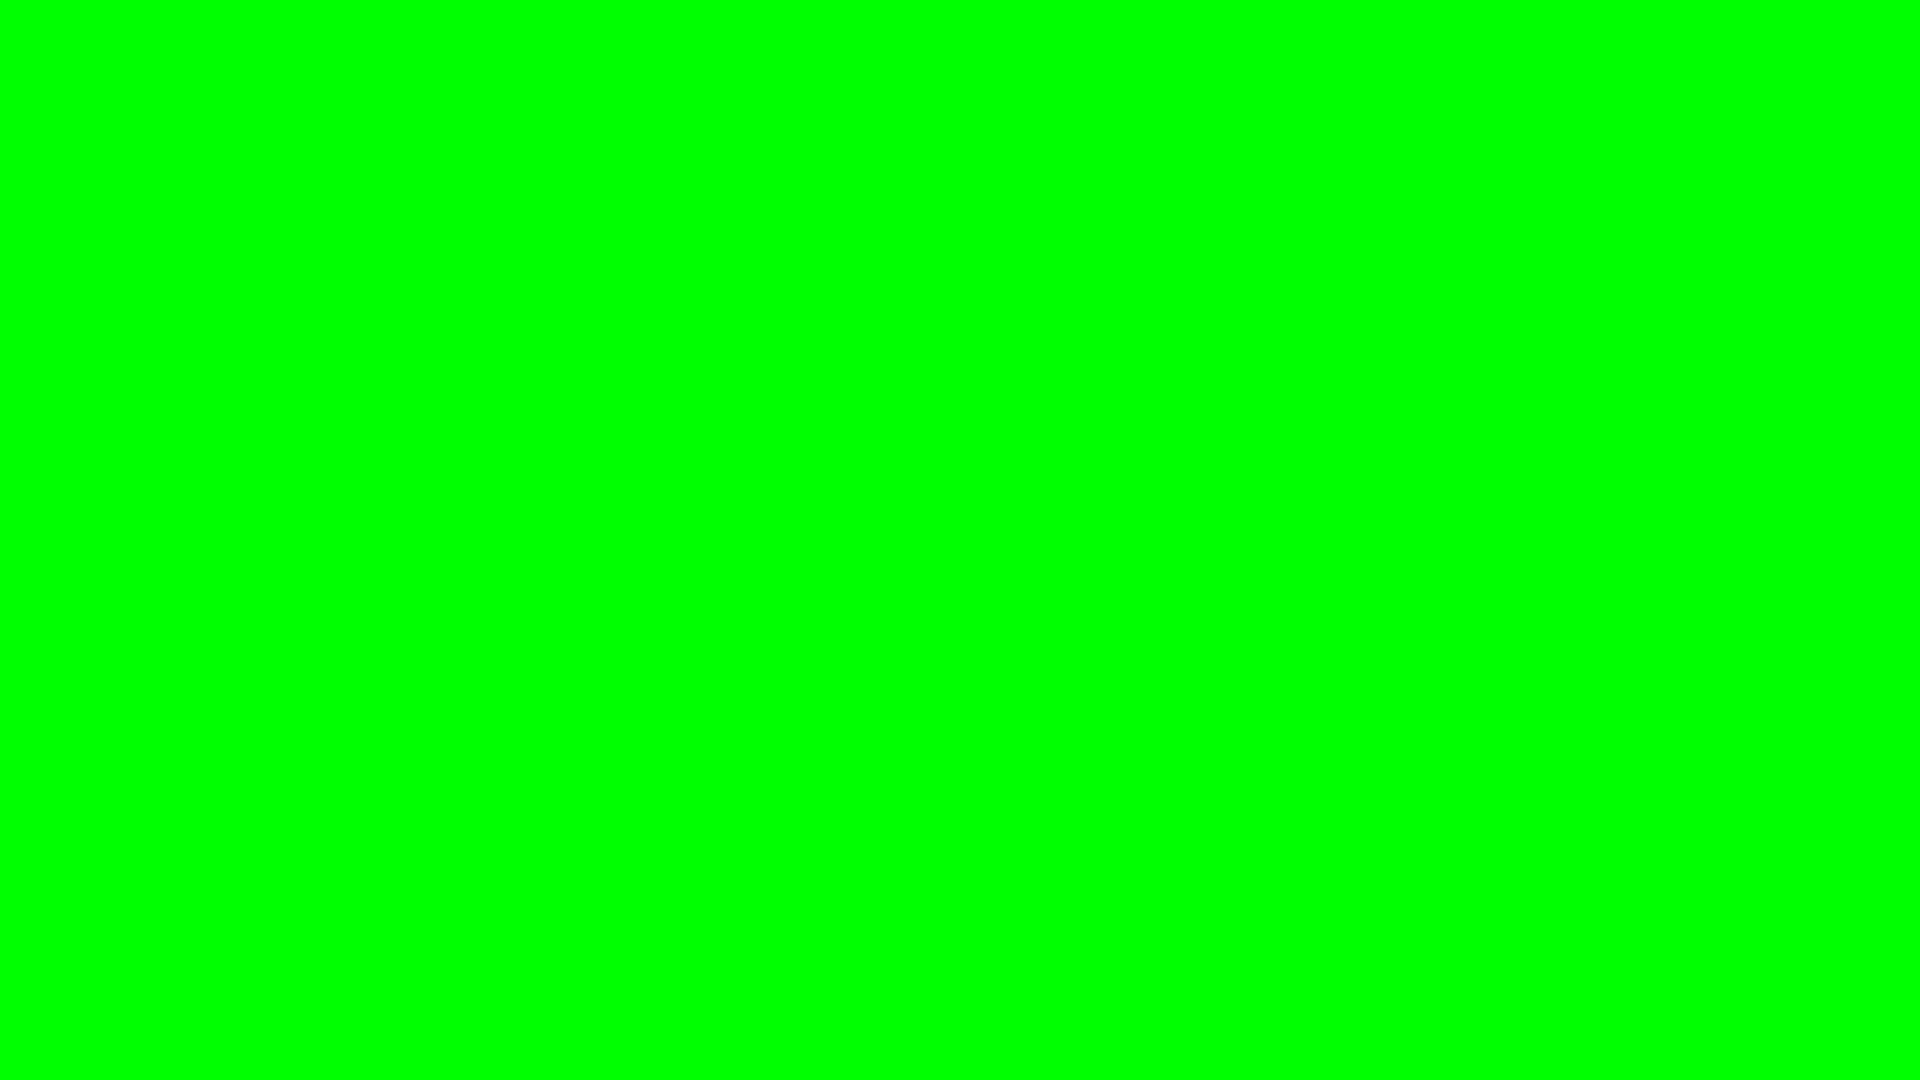 1920x1080 Lime Web Green Solid Color Background